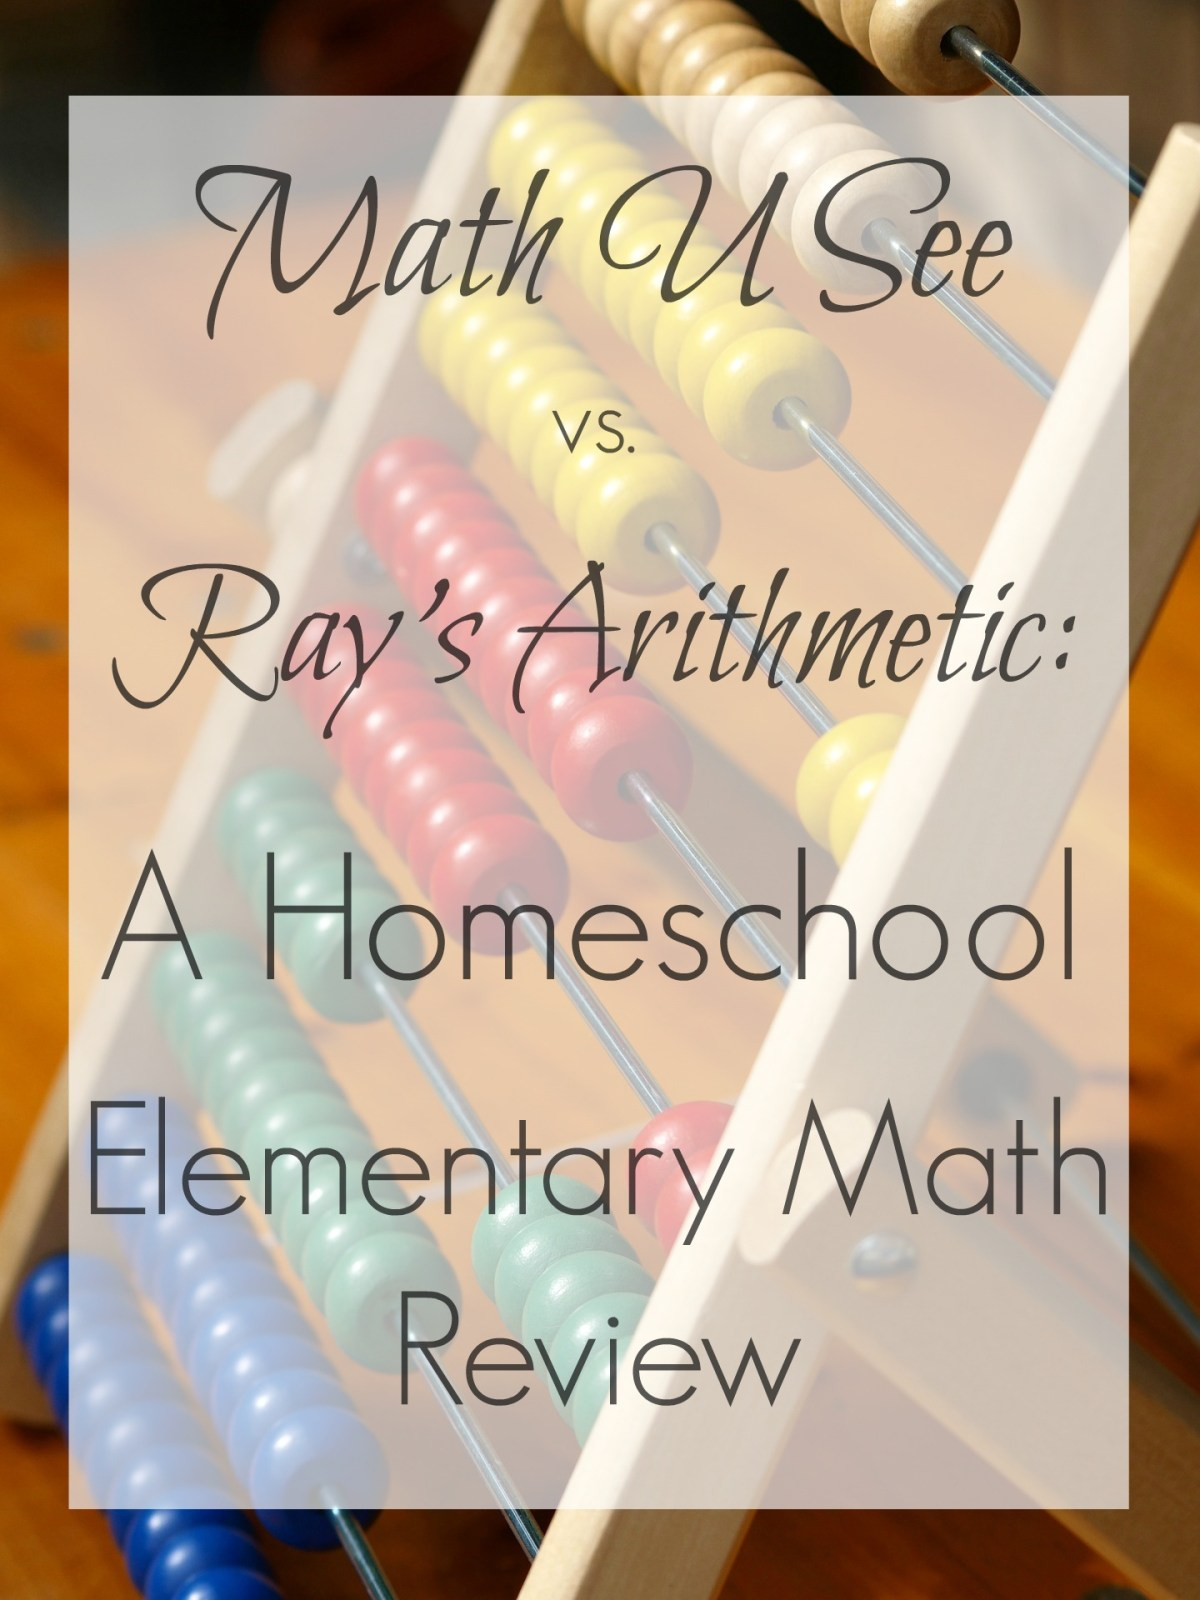 Math U See vs. Ray's Arithmetic  – A Review